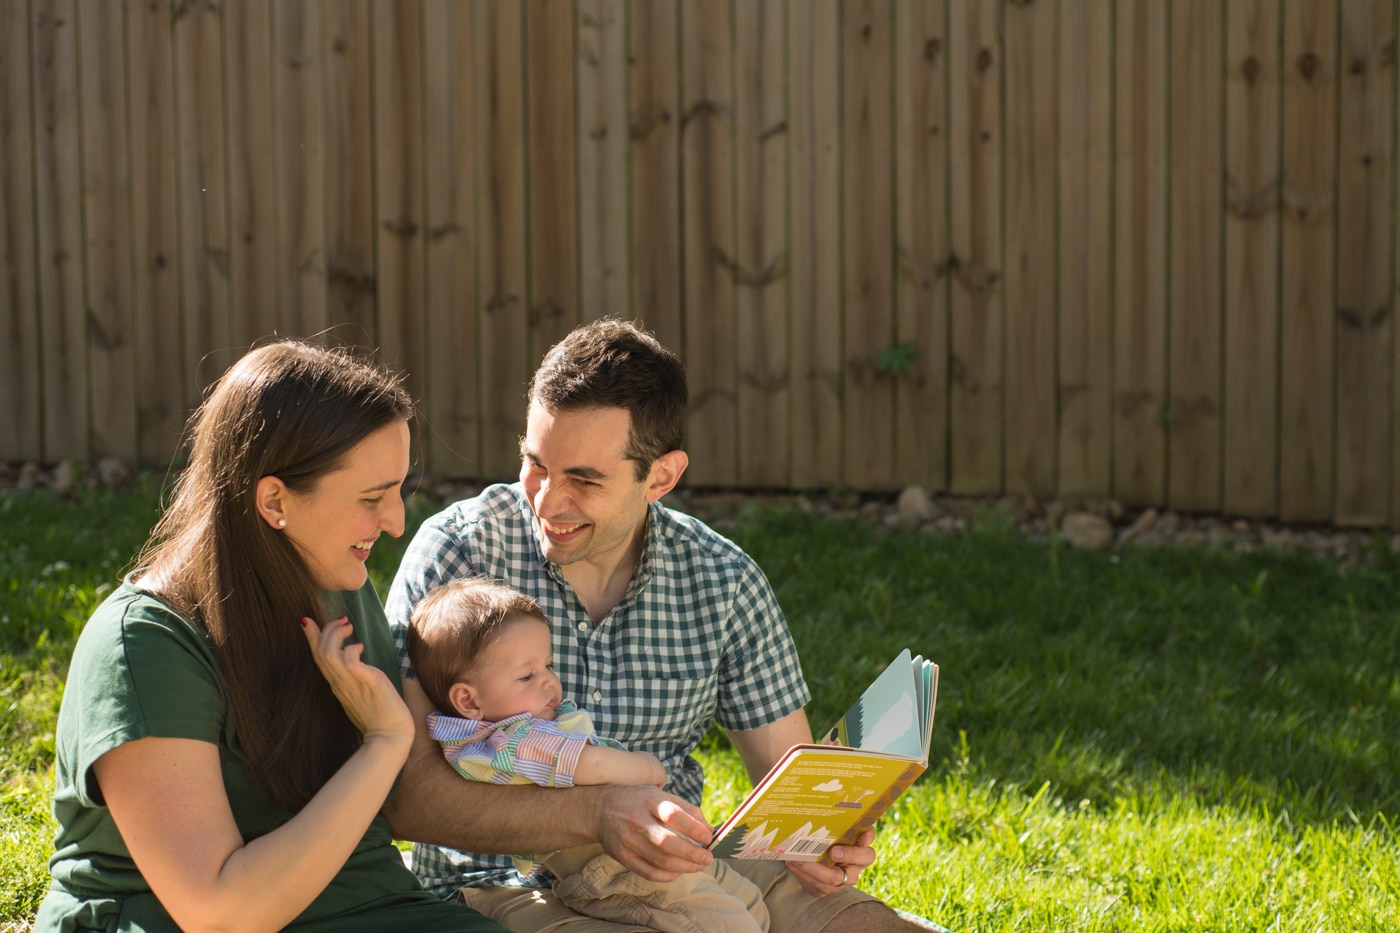 Married couple holding their baby and laughing over a kid's book in Atlanta backyard Raven Shutley